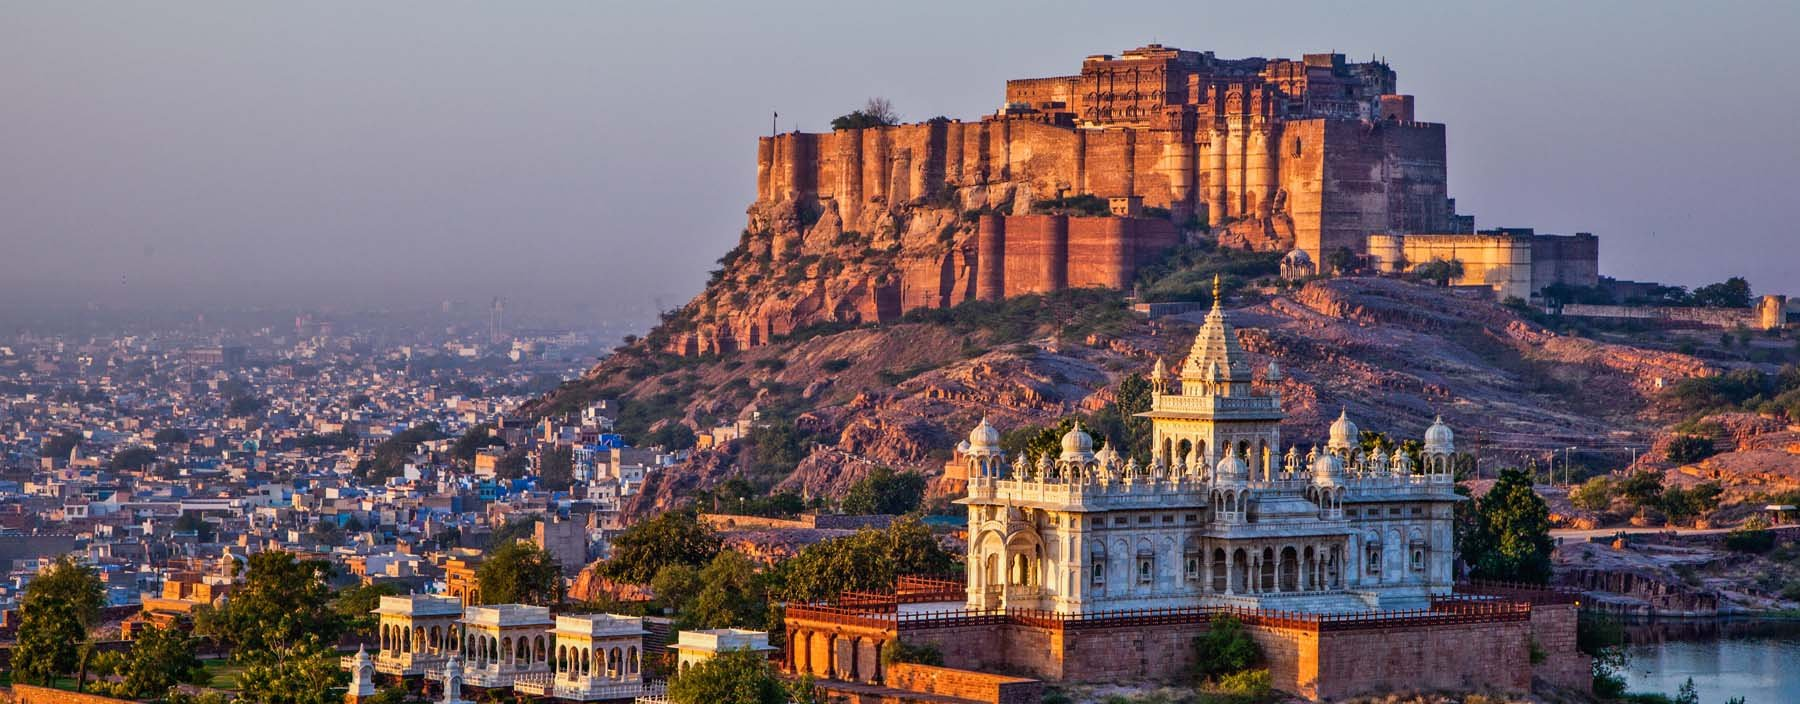 in, jodhpur, mehrangarh fort and jaswant thada mausoleum.jpg